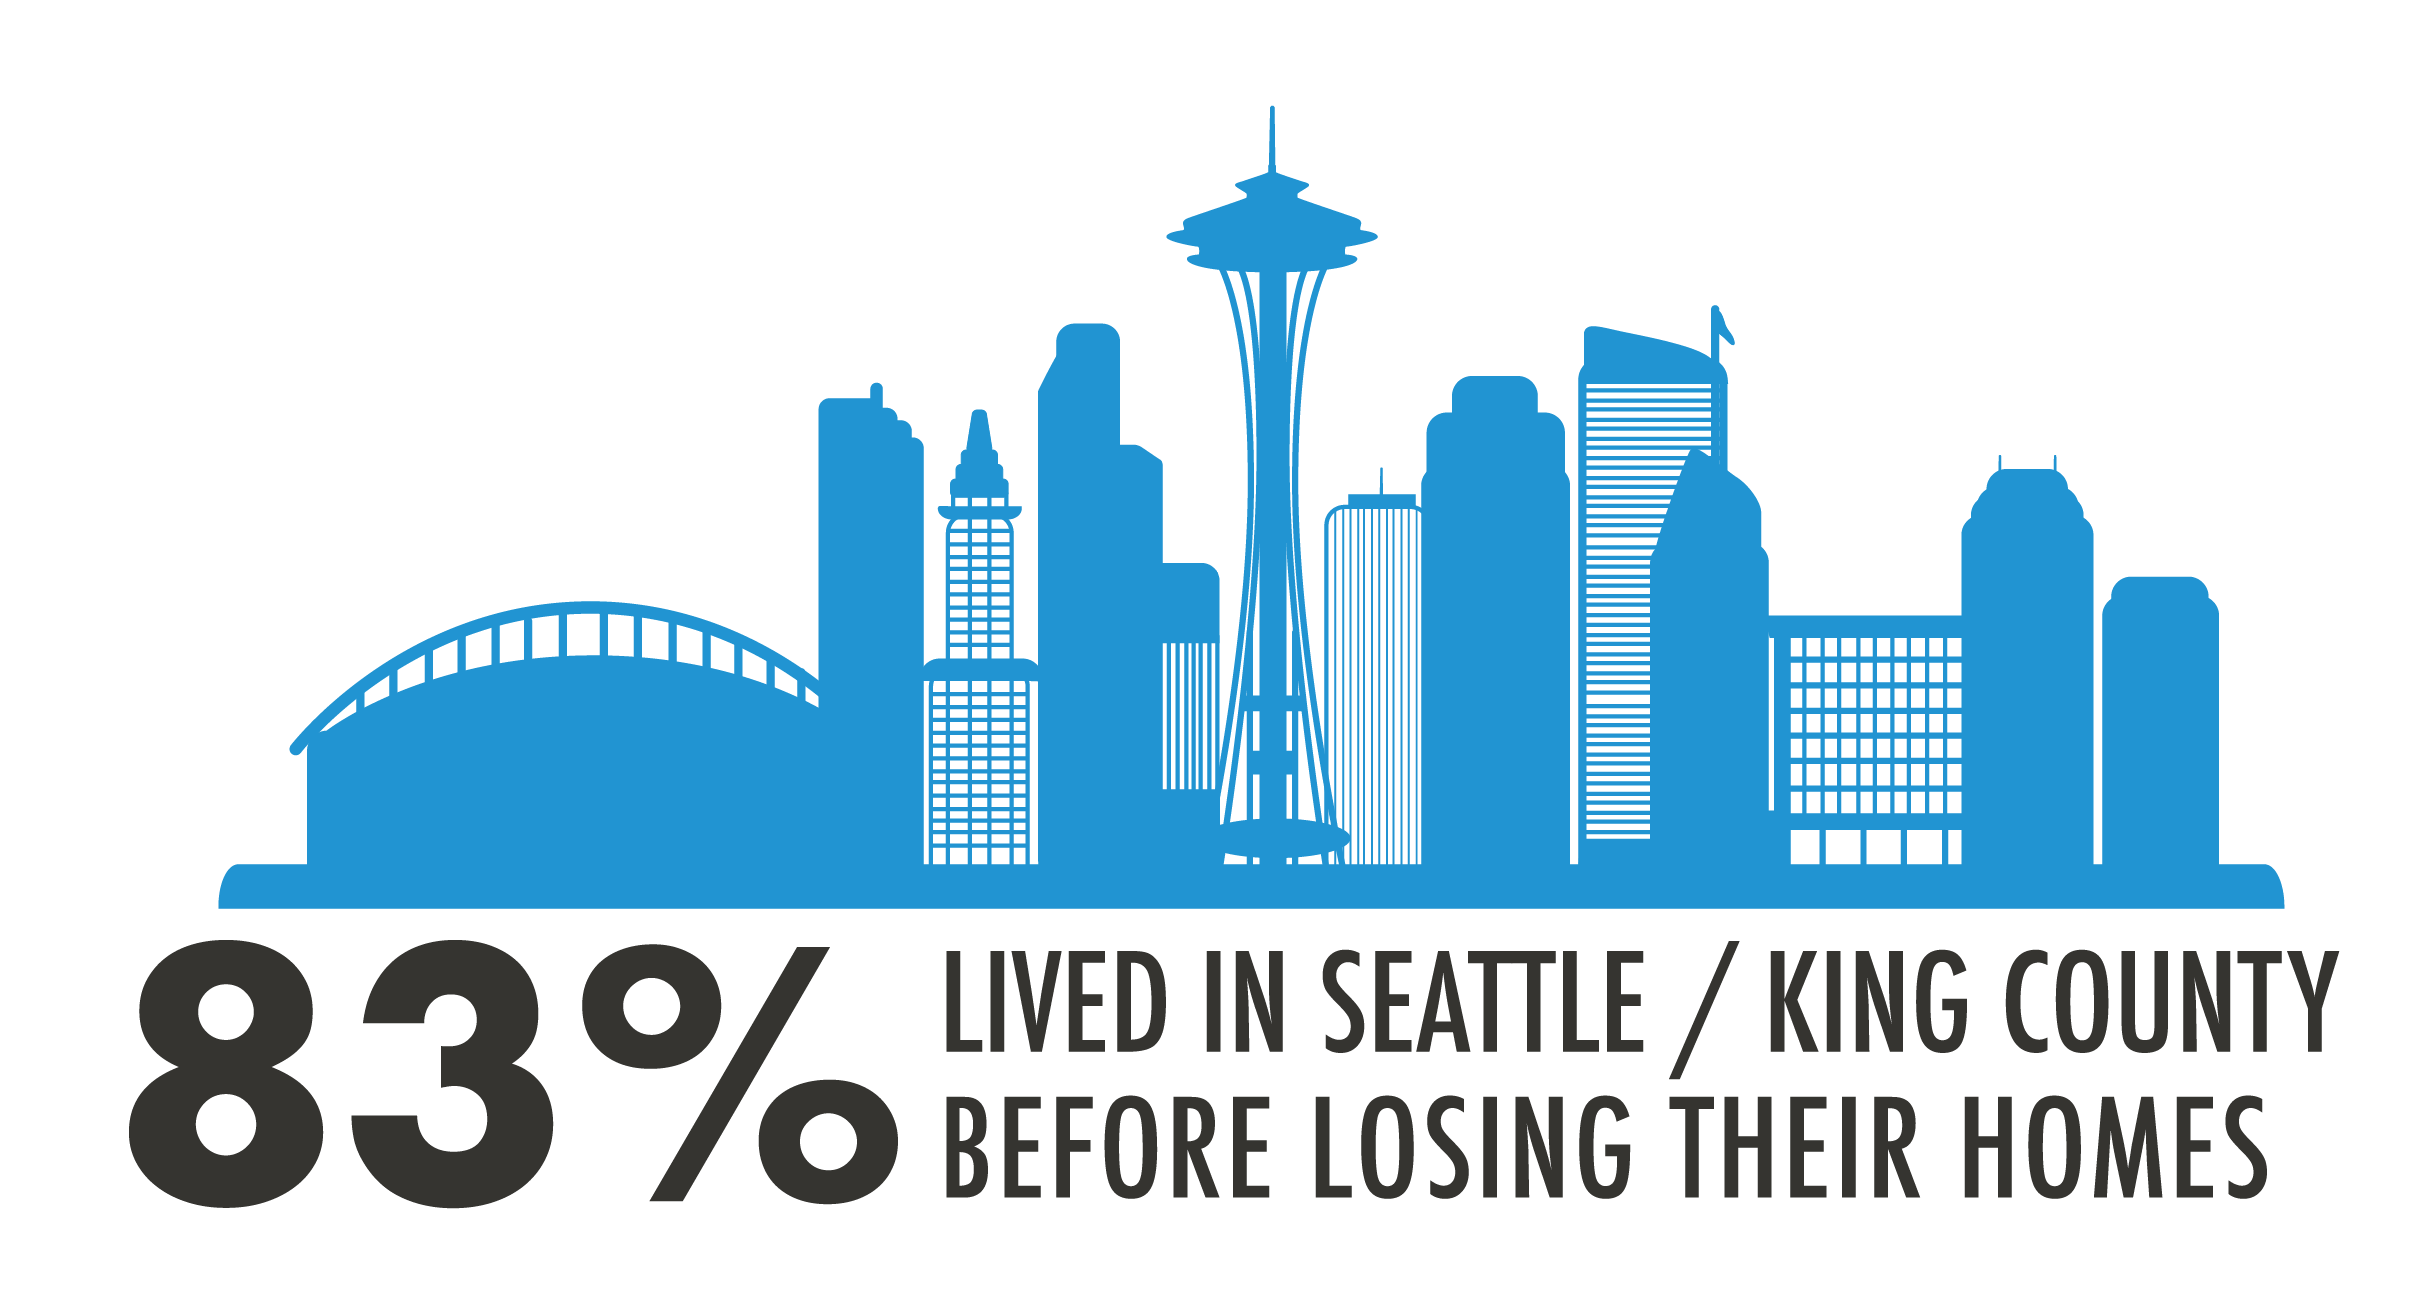 Seattle_graphic-02.png